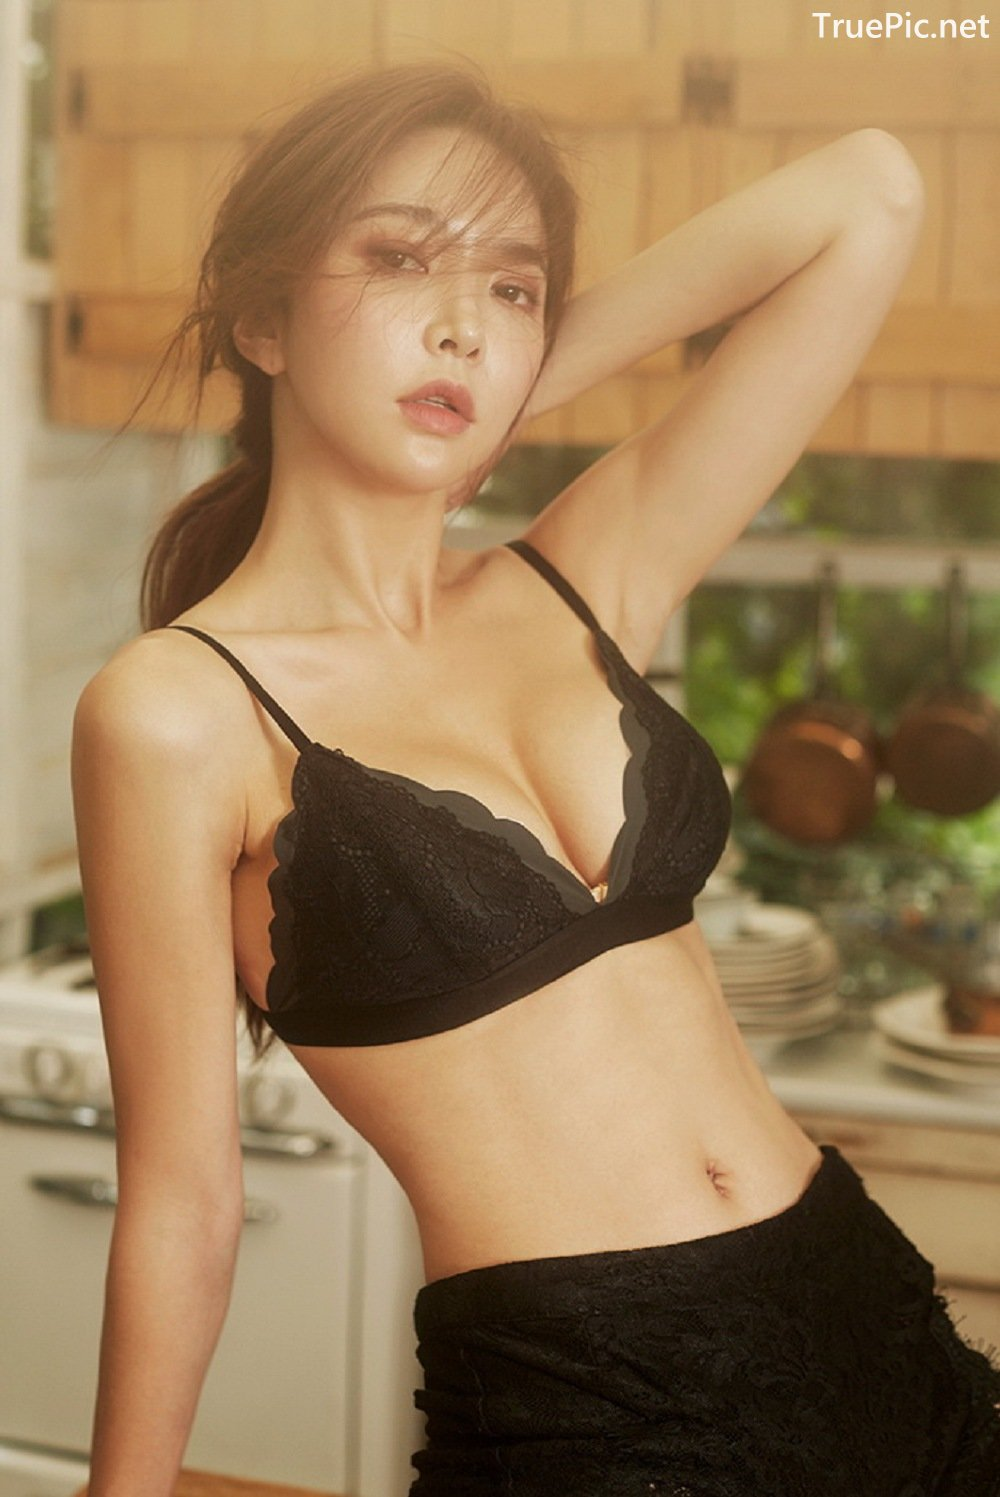 Image-Park-Soo-Yeon-Black-Red-and-White-Lingerie-Korean-Model-Fashion-TruePic.net- Picture-3